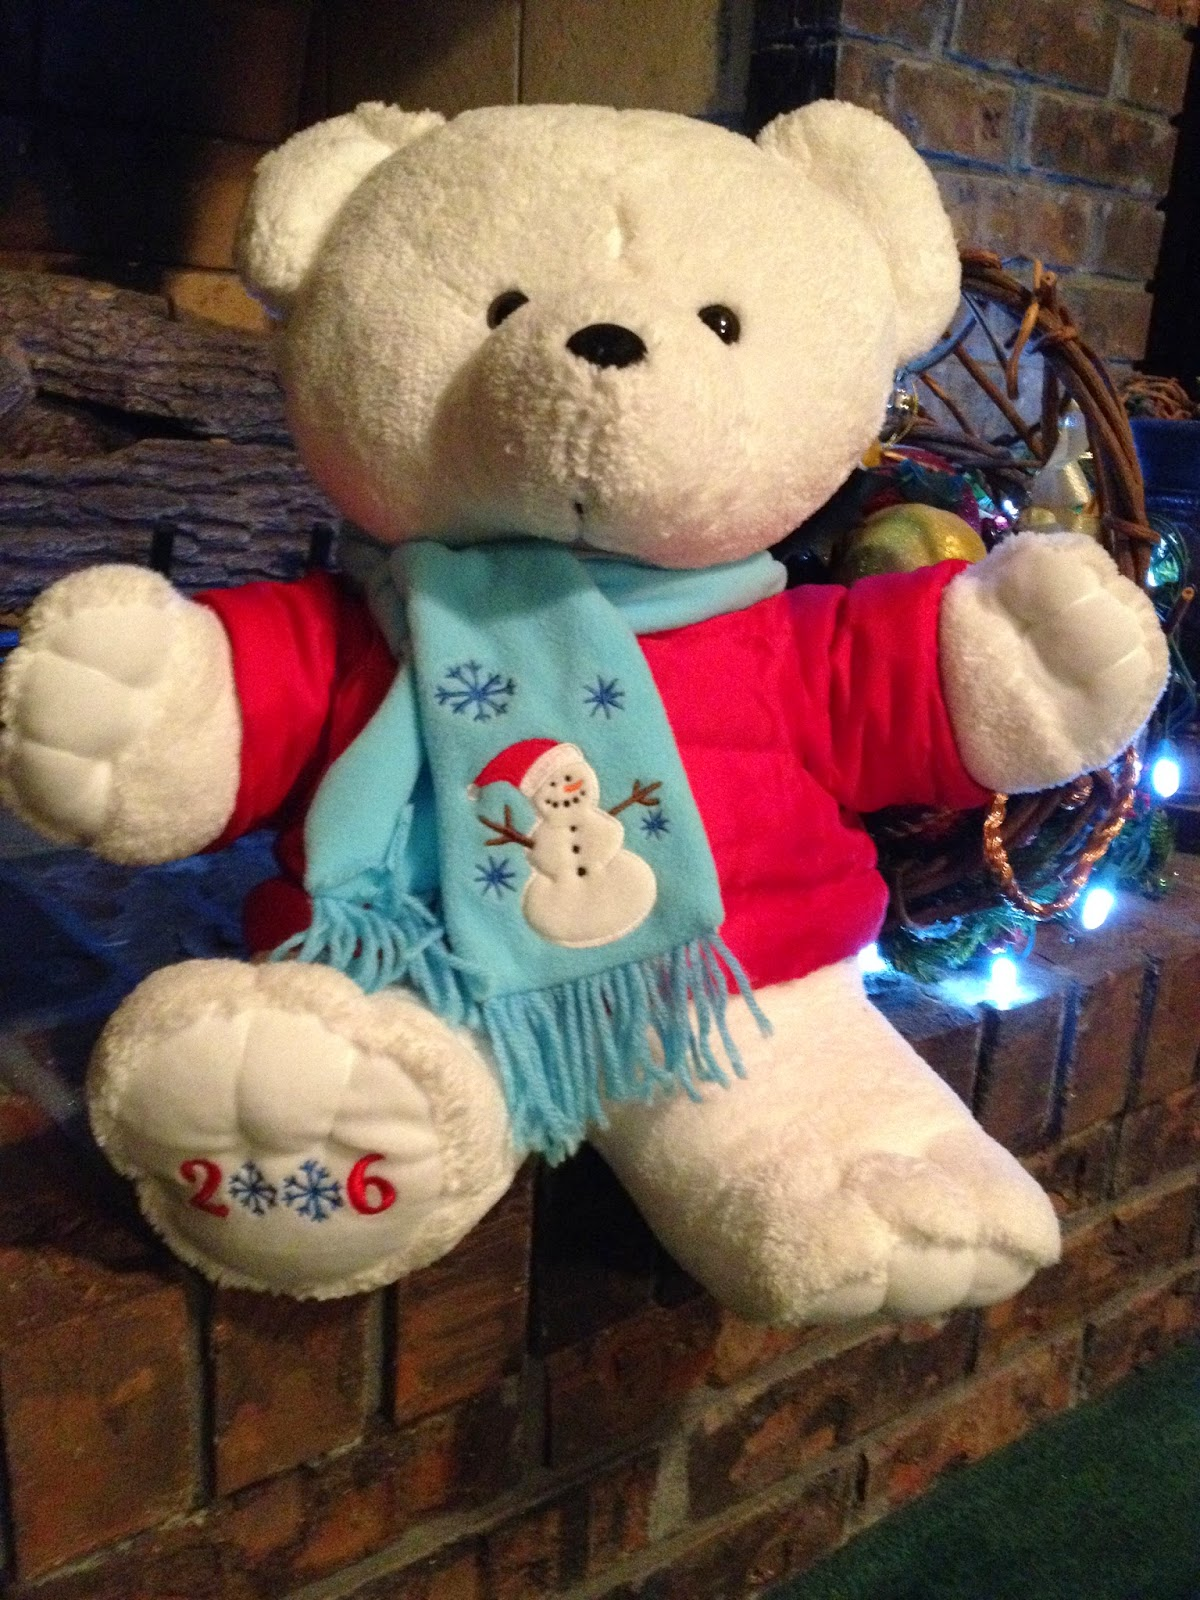 The Teddy Bear Shelter: 2006 DanDee Kmart Christmas Bear with dated foot